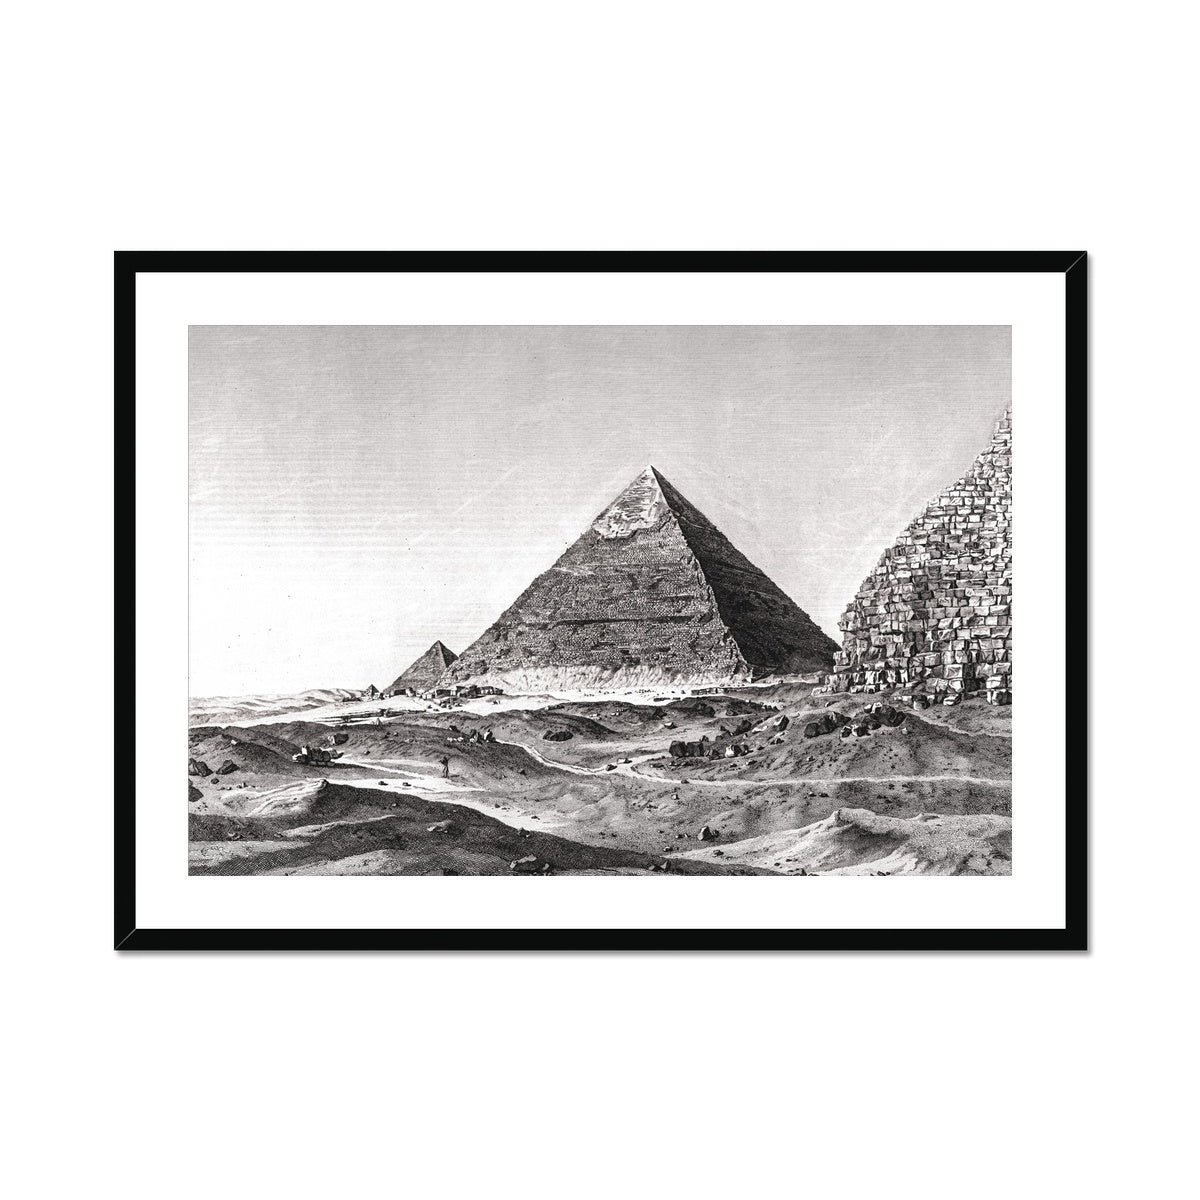 View of the Second Pyramid - Memphis Egypt -  Framed & Mounted Print